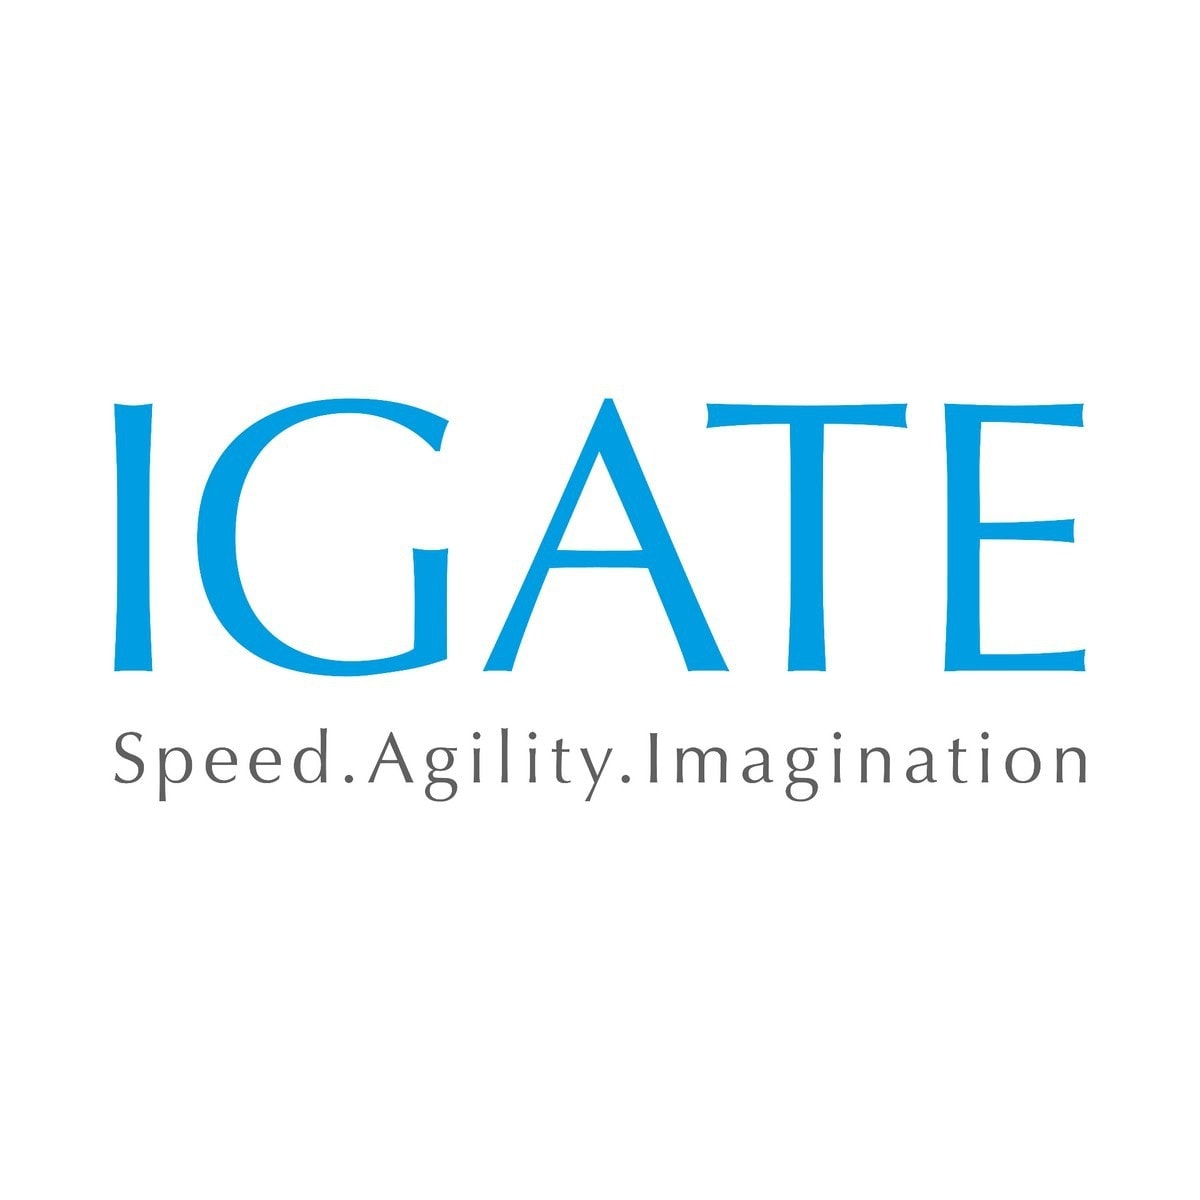 Marketing Mix Of IGATE - IGATE Marketing Mix and 4 P's of Igate